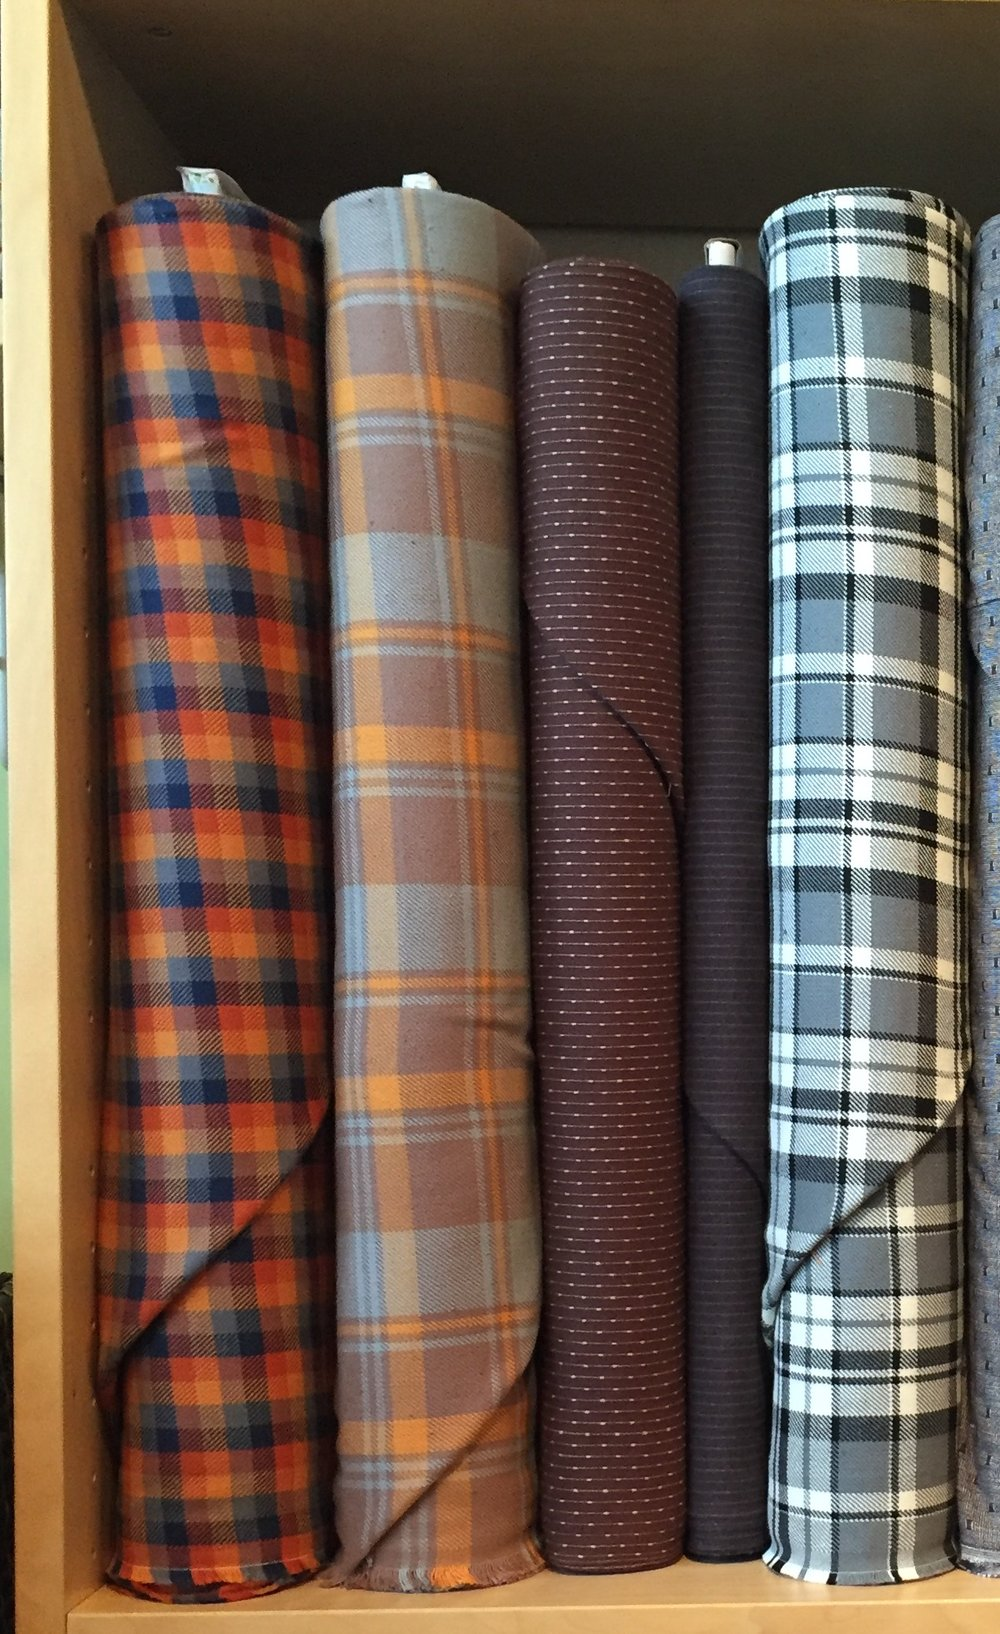 The black and white plaid would make up the cutest Phoebe by Colette, and the butterscotch mocha plaid would be a mighty fine Negroni!